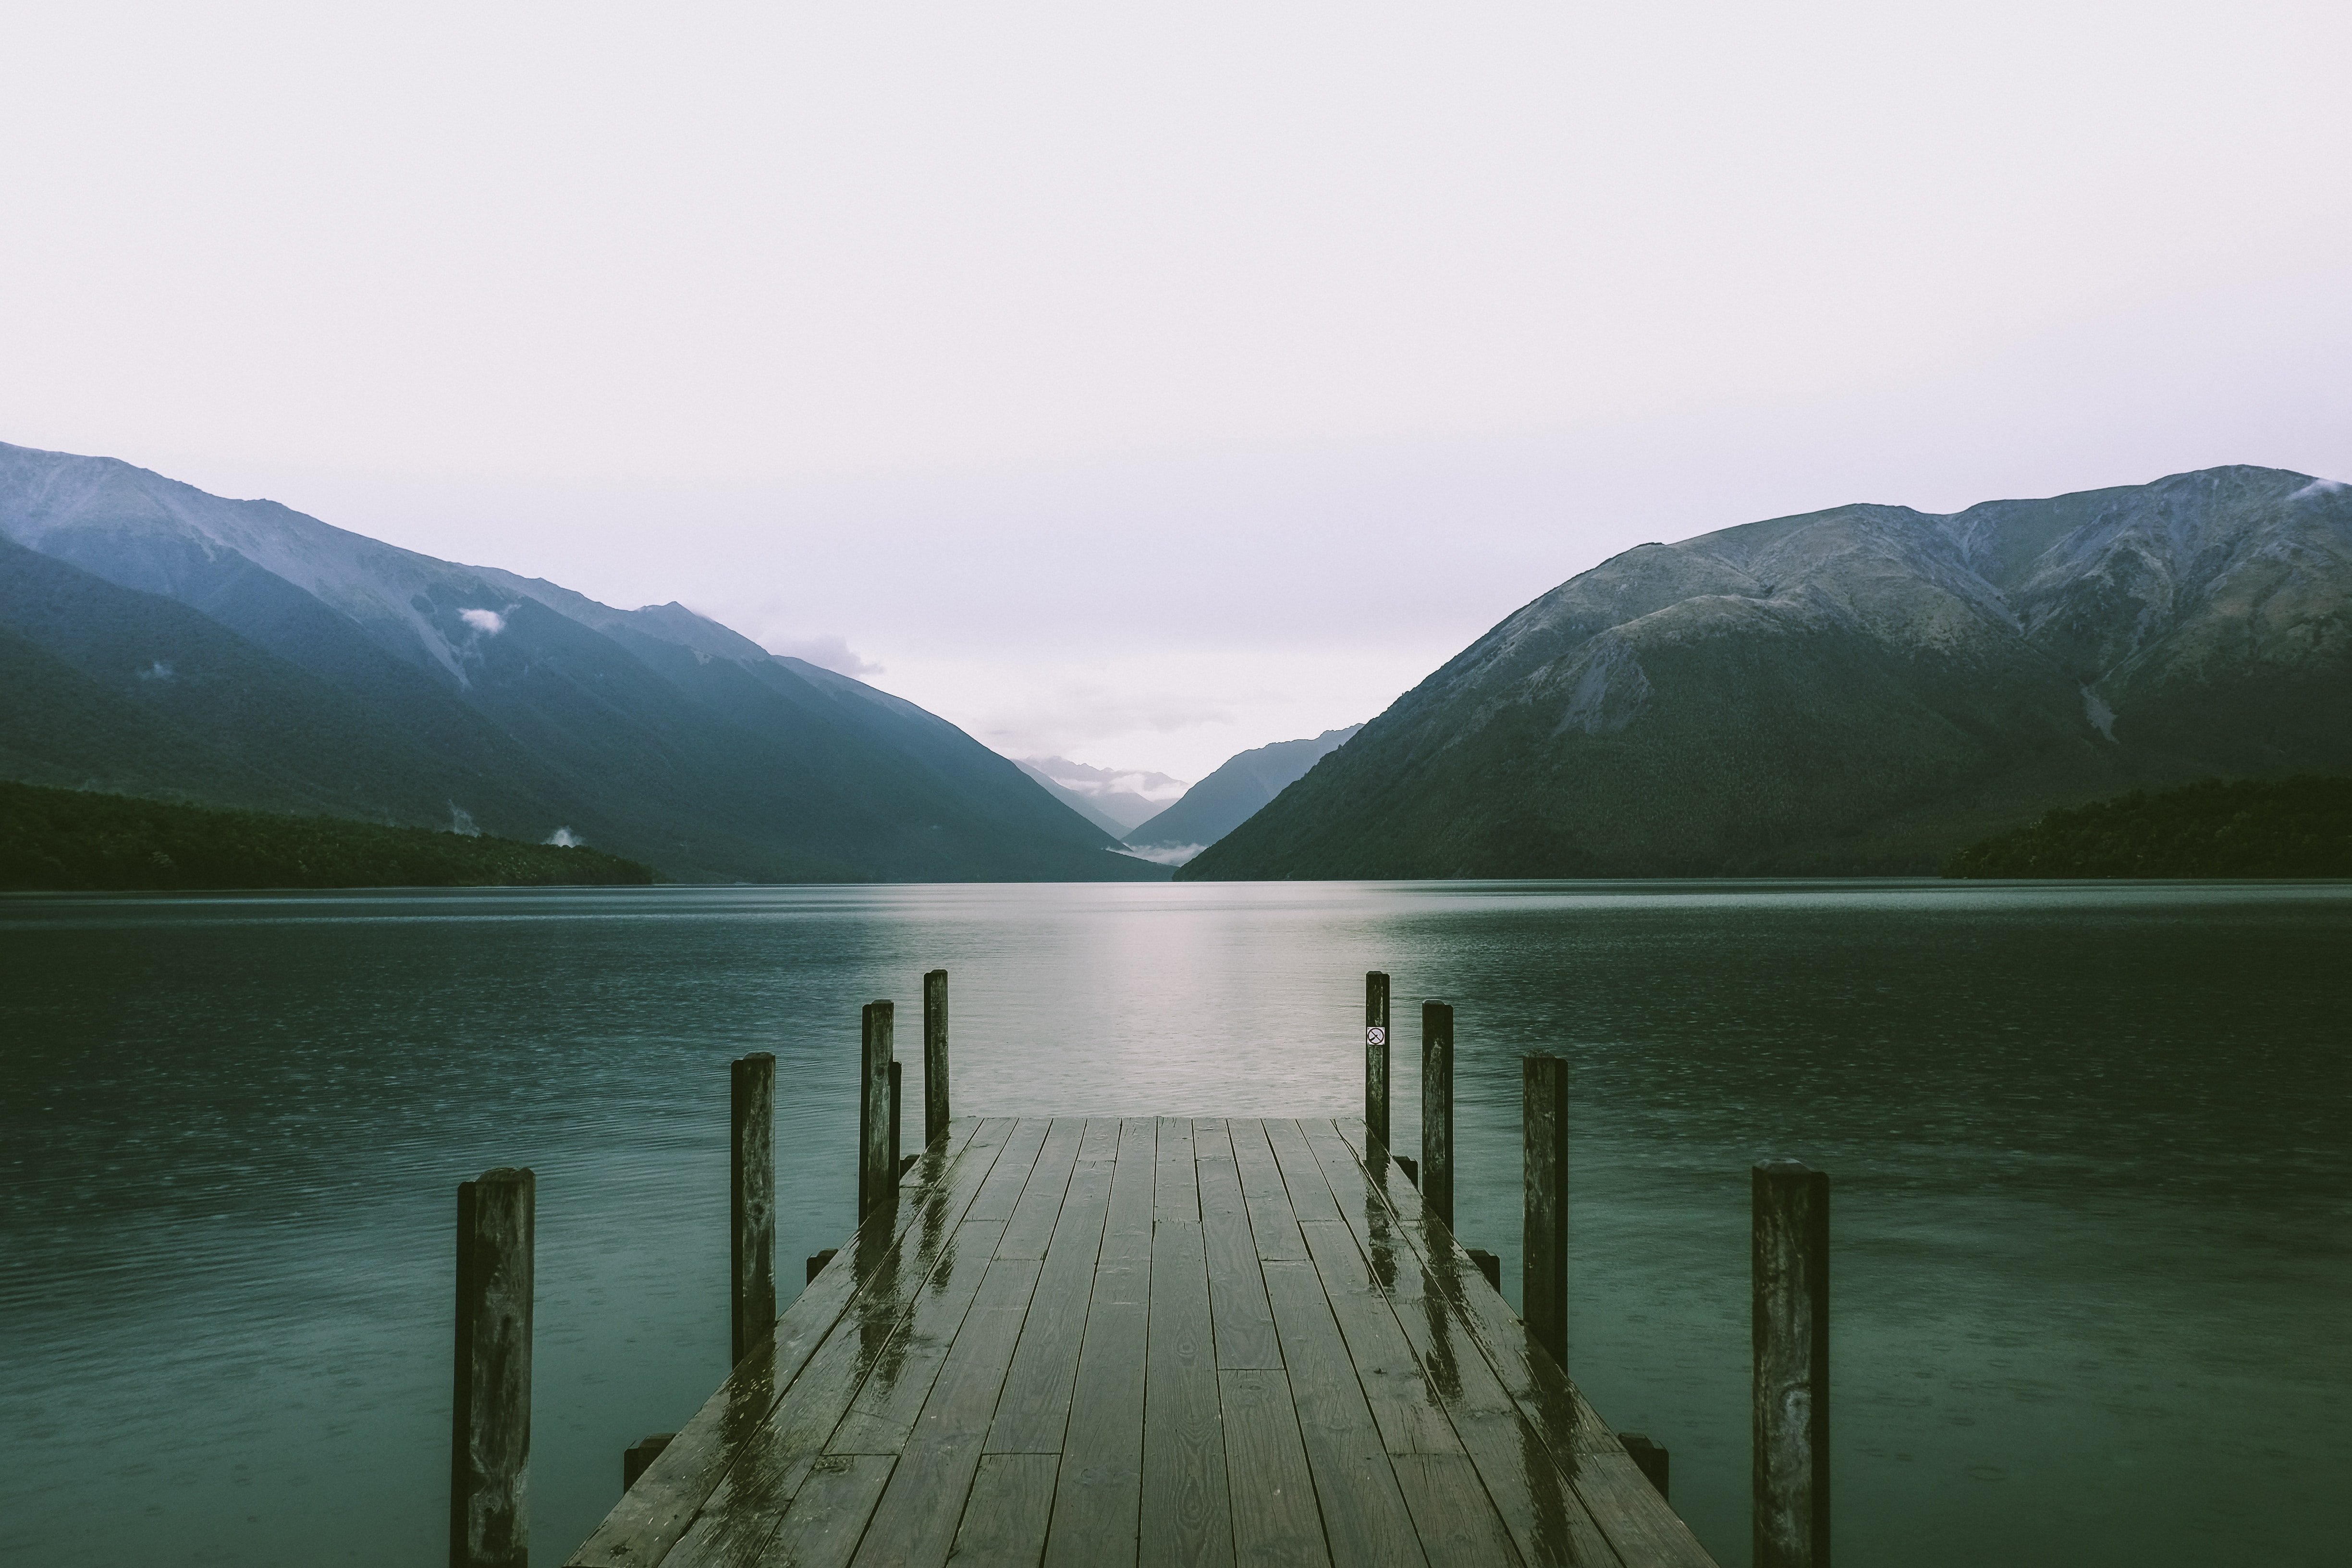 Lake Rotoiti with the mountains in the distance